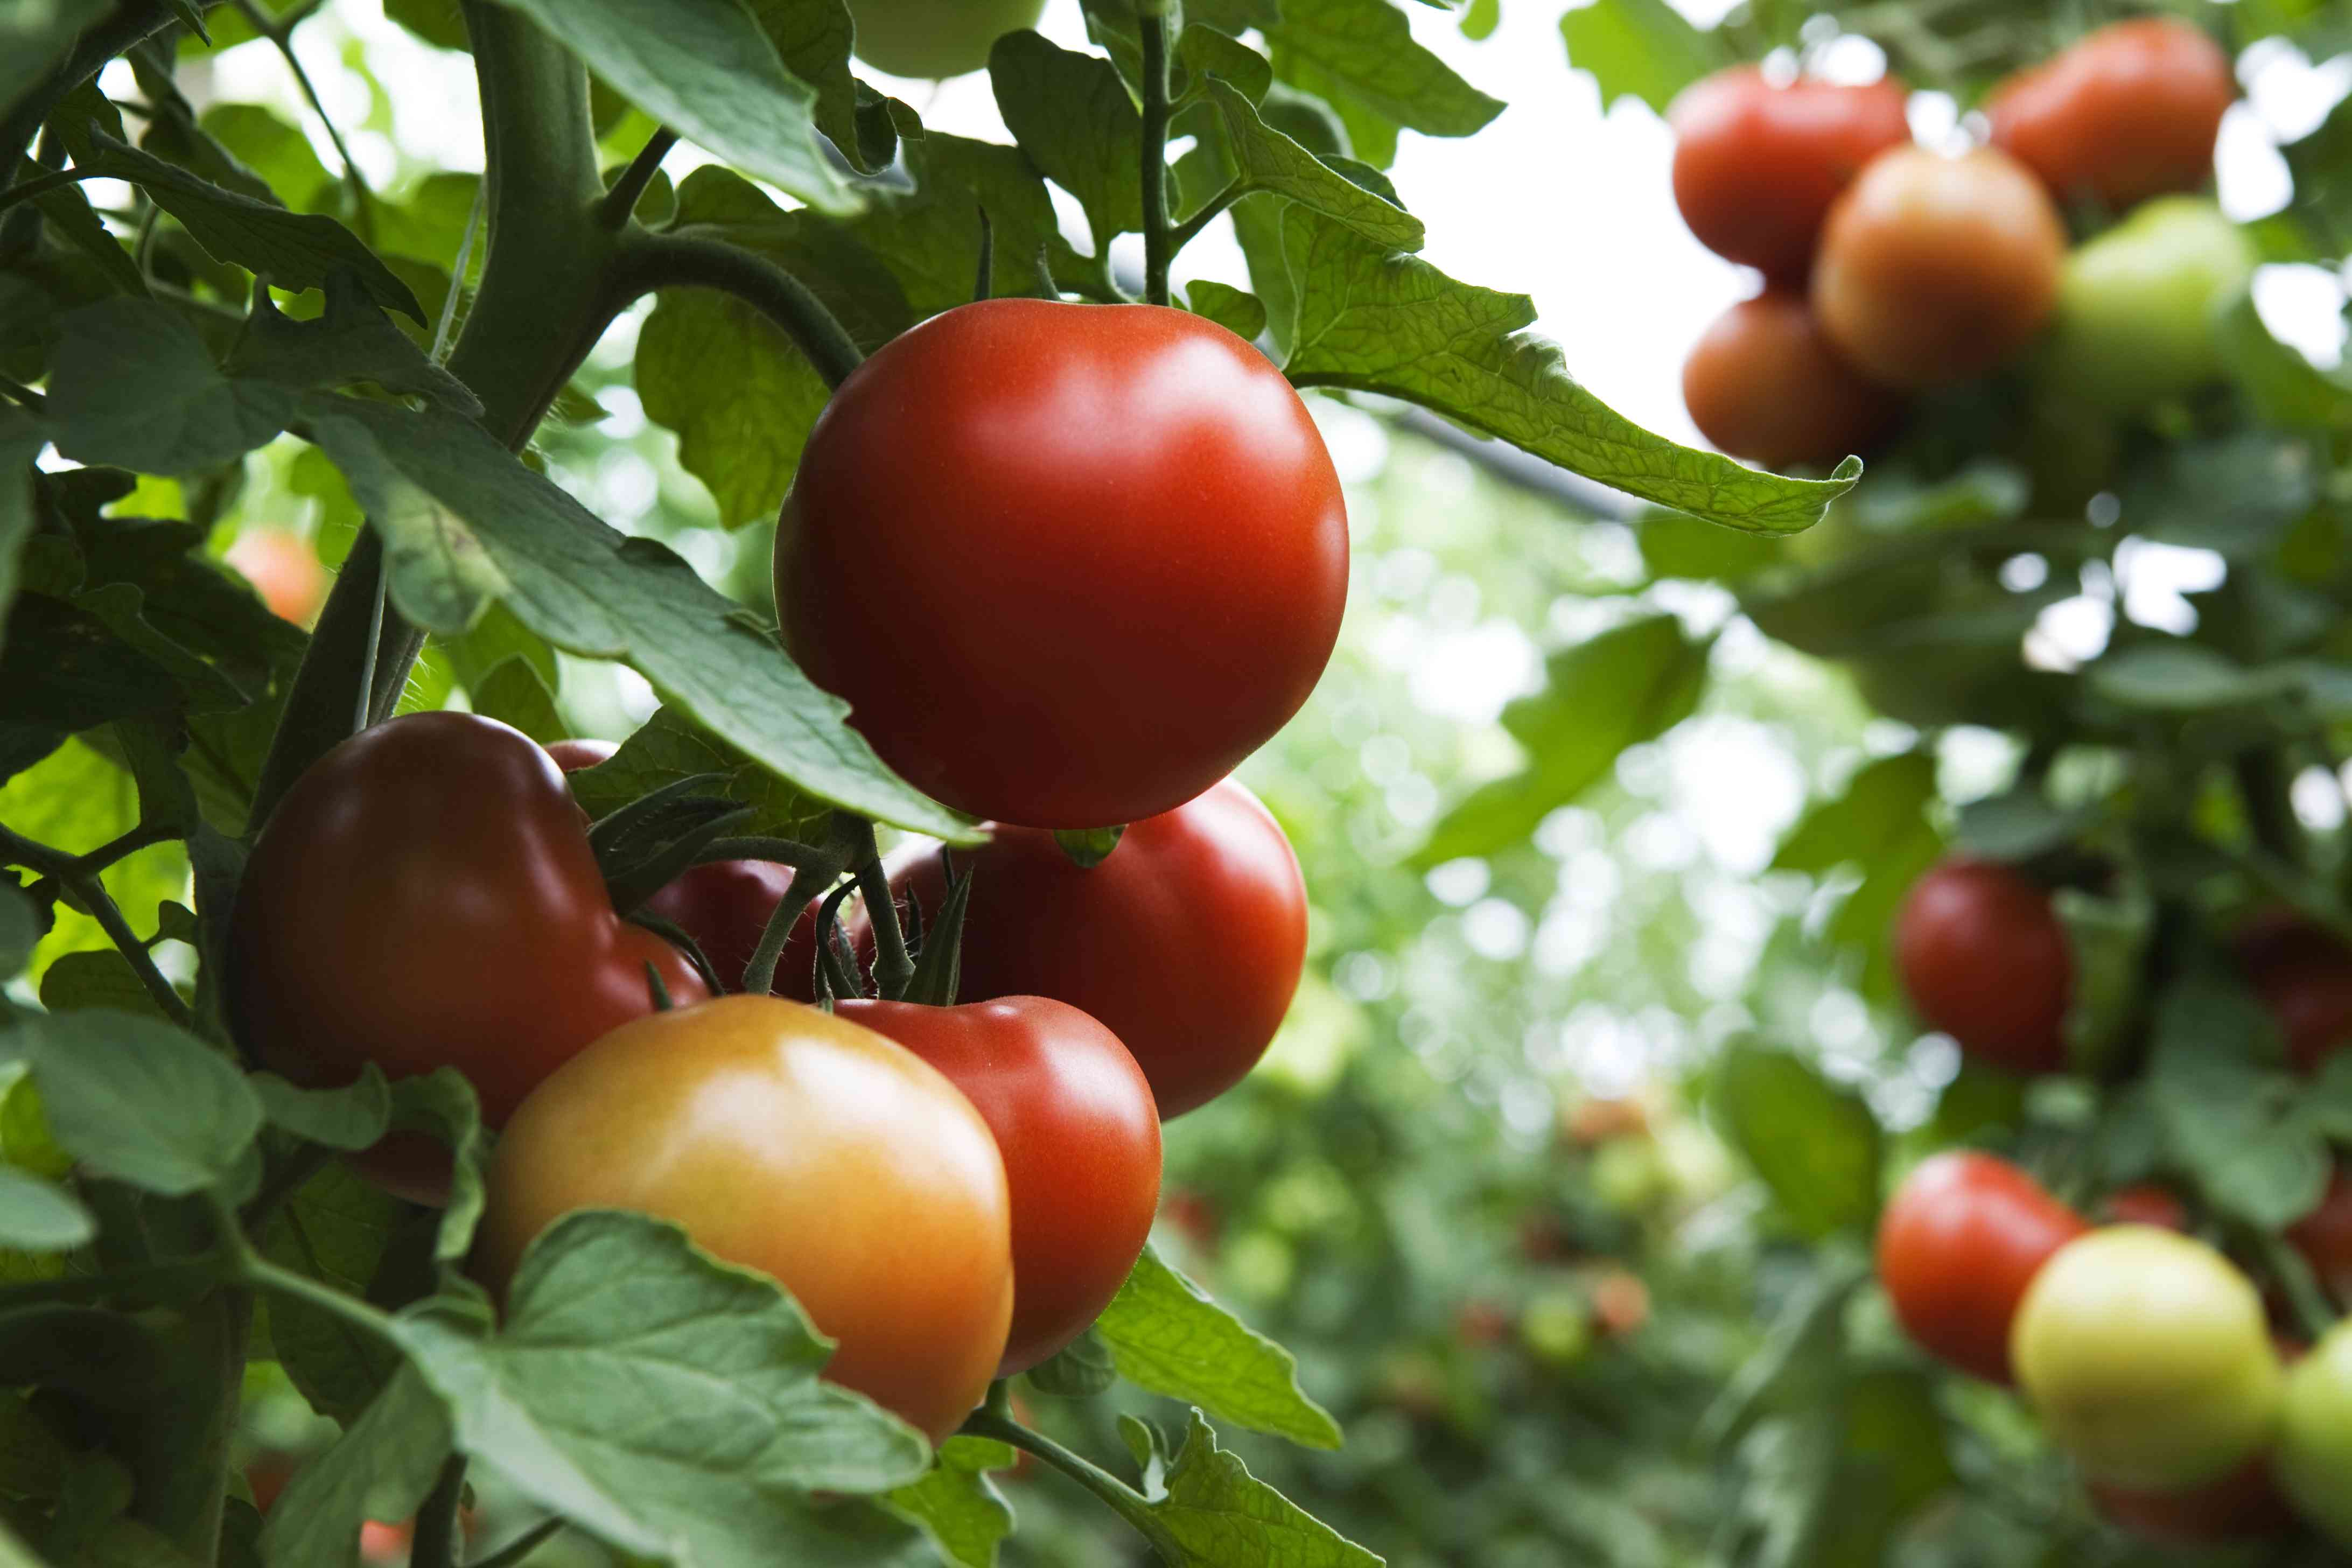 close-up of tomato plant with lots of ripe fruits